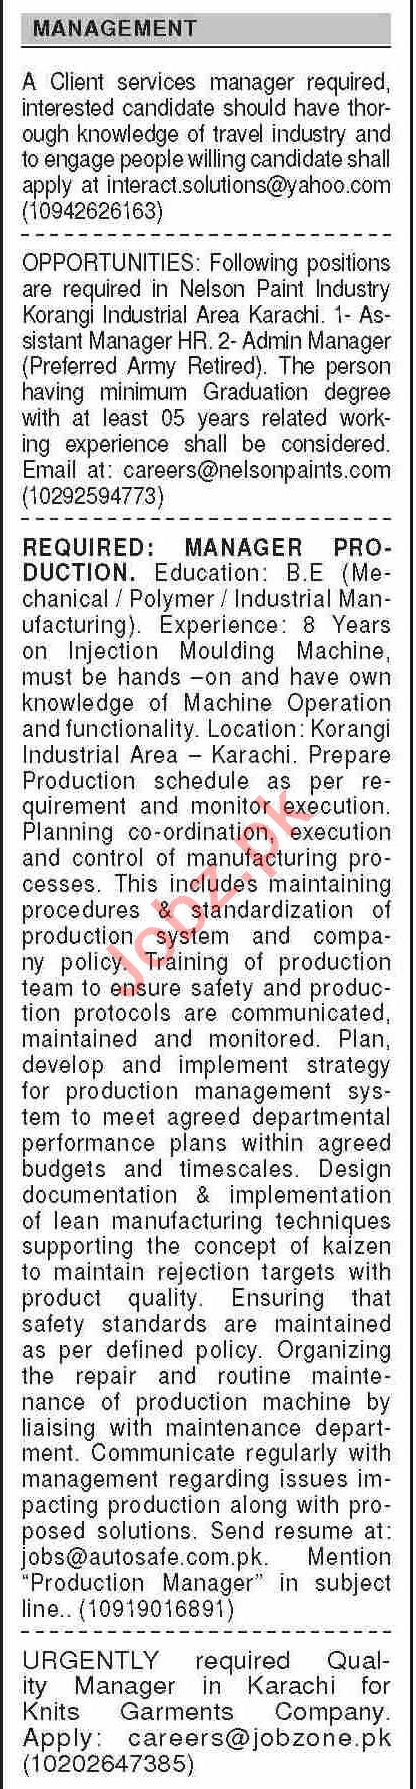 Dawn Sunday Classified Ads 4 July 2021 for Management Staff